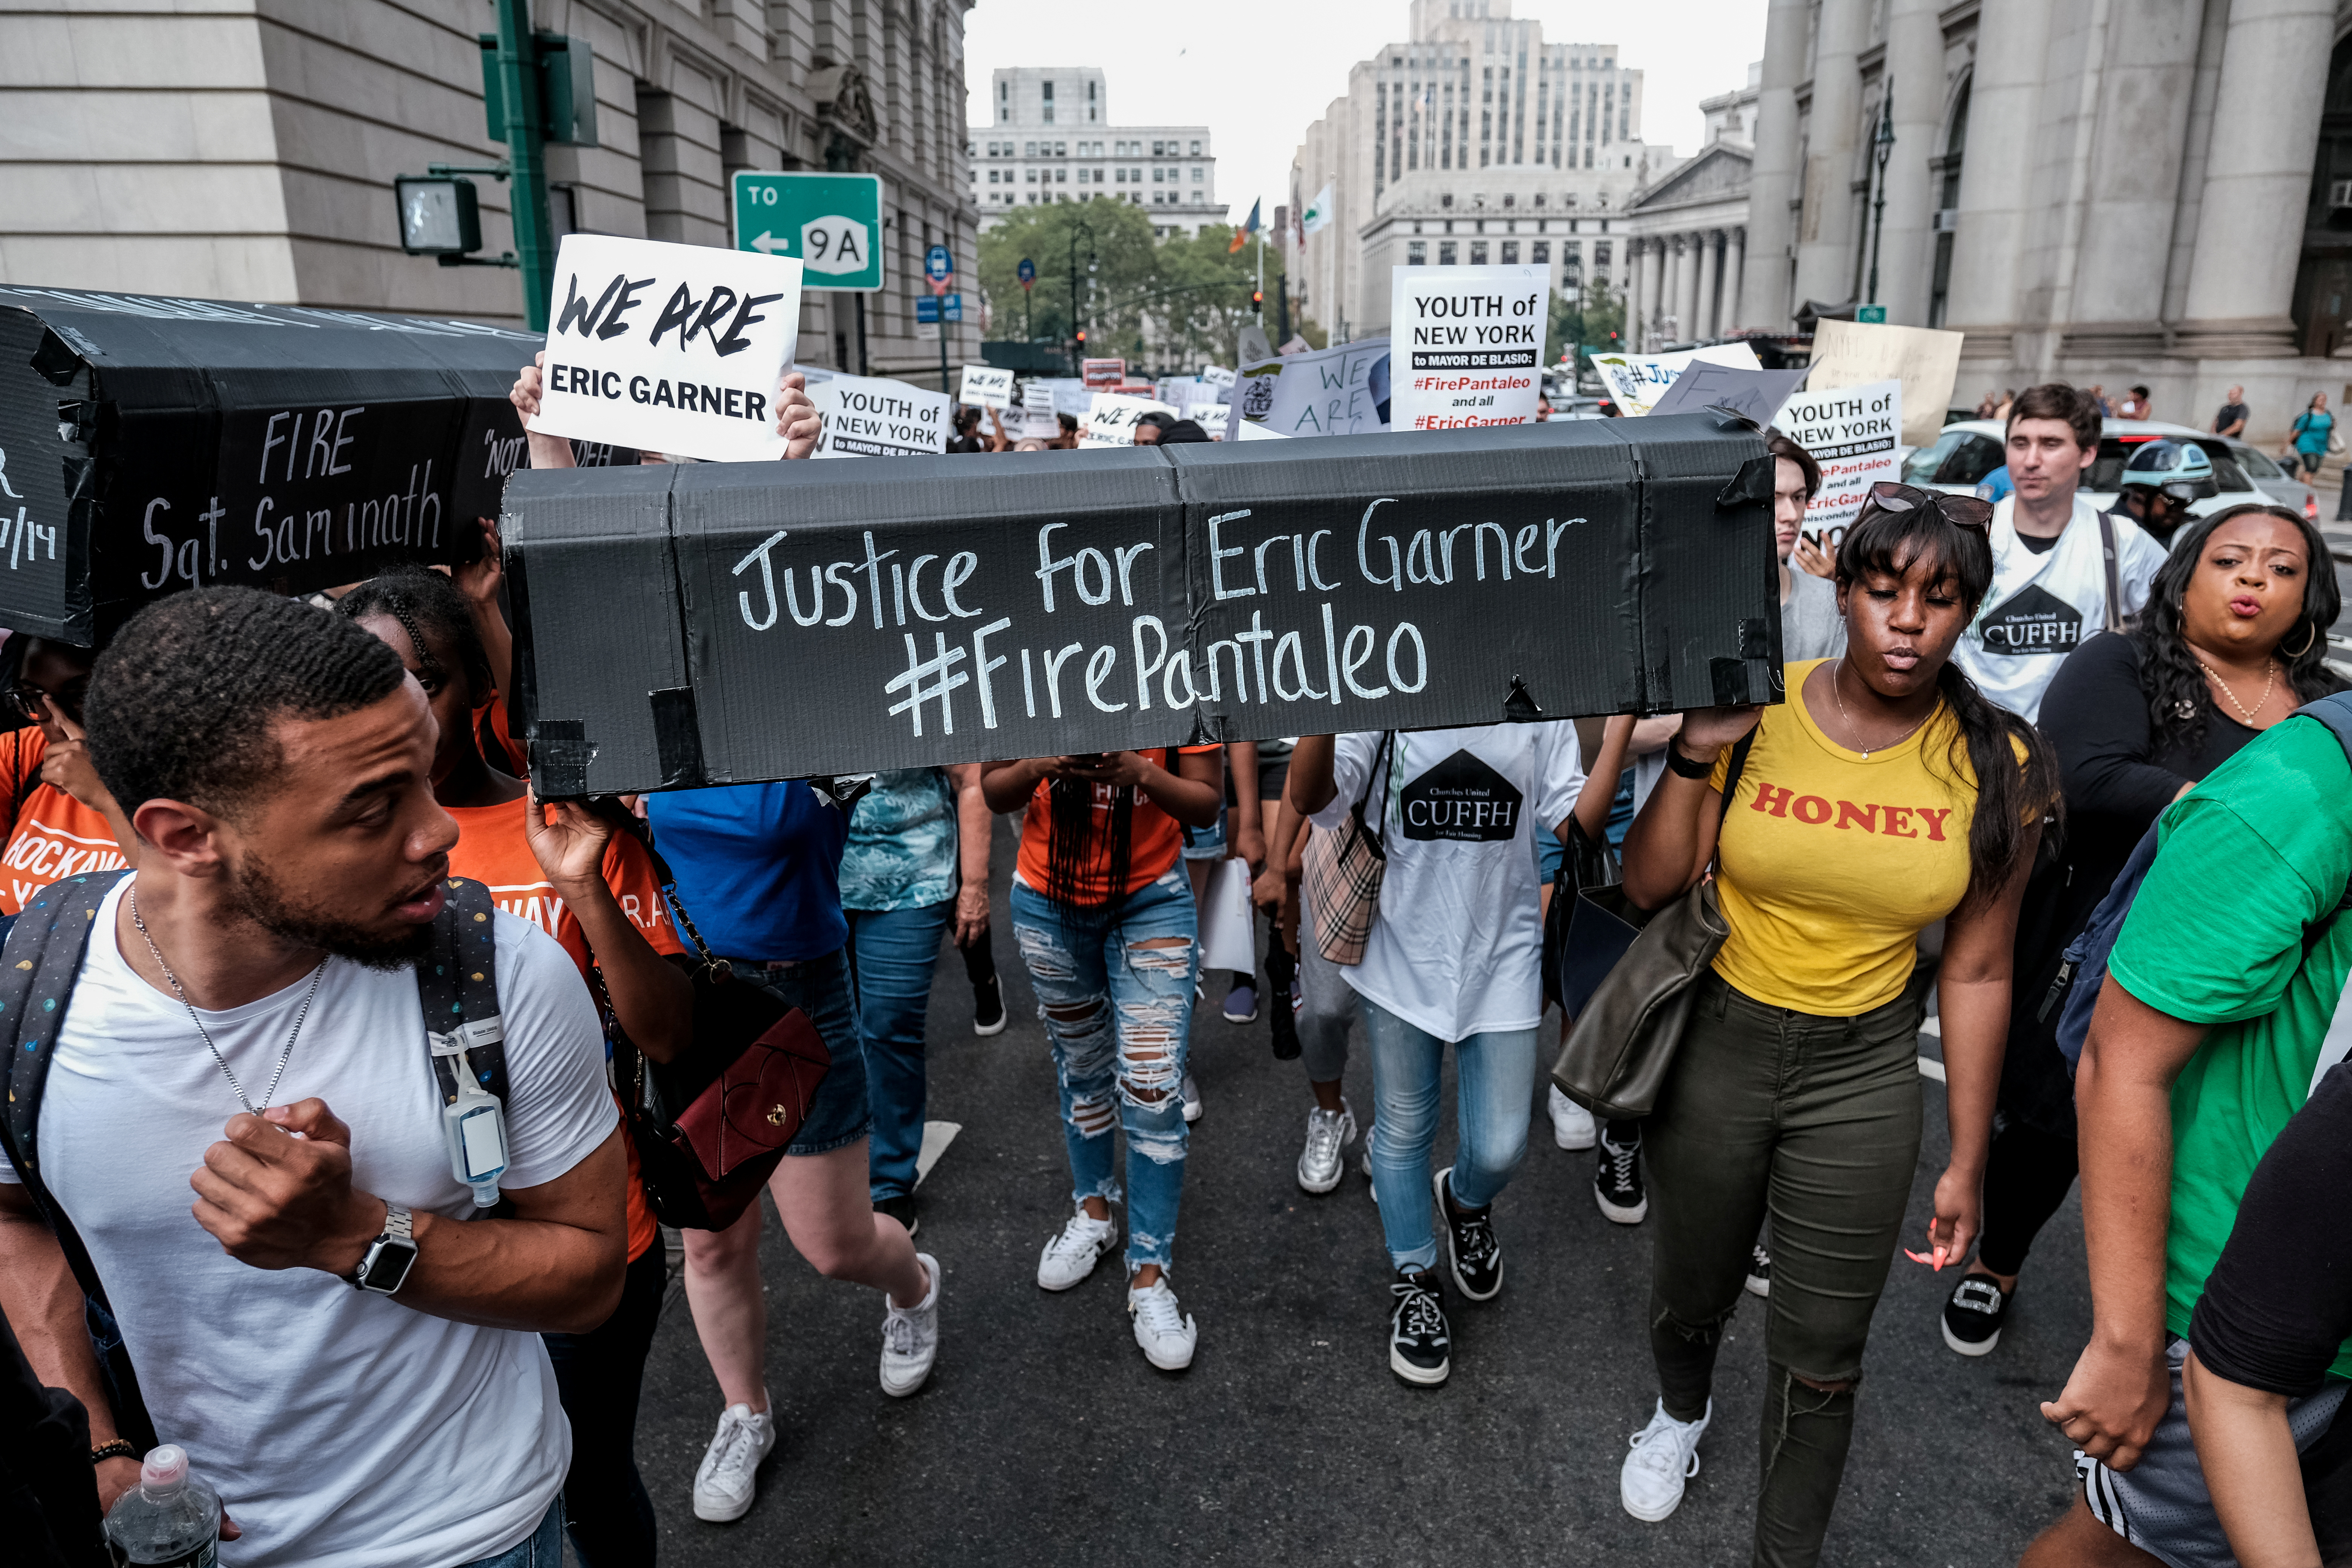 Protesters march and rally on the fifth anniversary of the death of Eric Garner, a day after federal prosecutors announced their decision not to prosecute NYPD officer Daniel Pantaleo. (REUTERS/Michael A. McCoy)